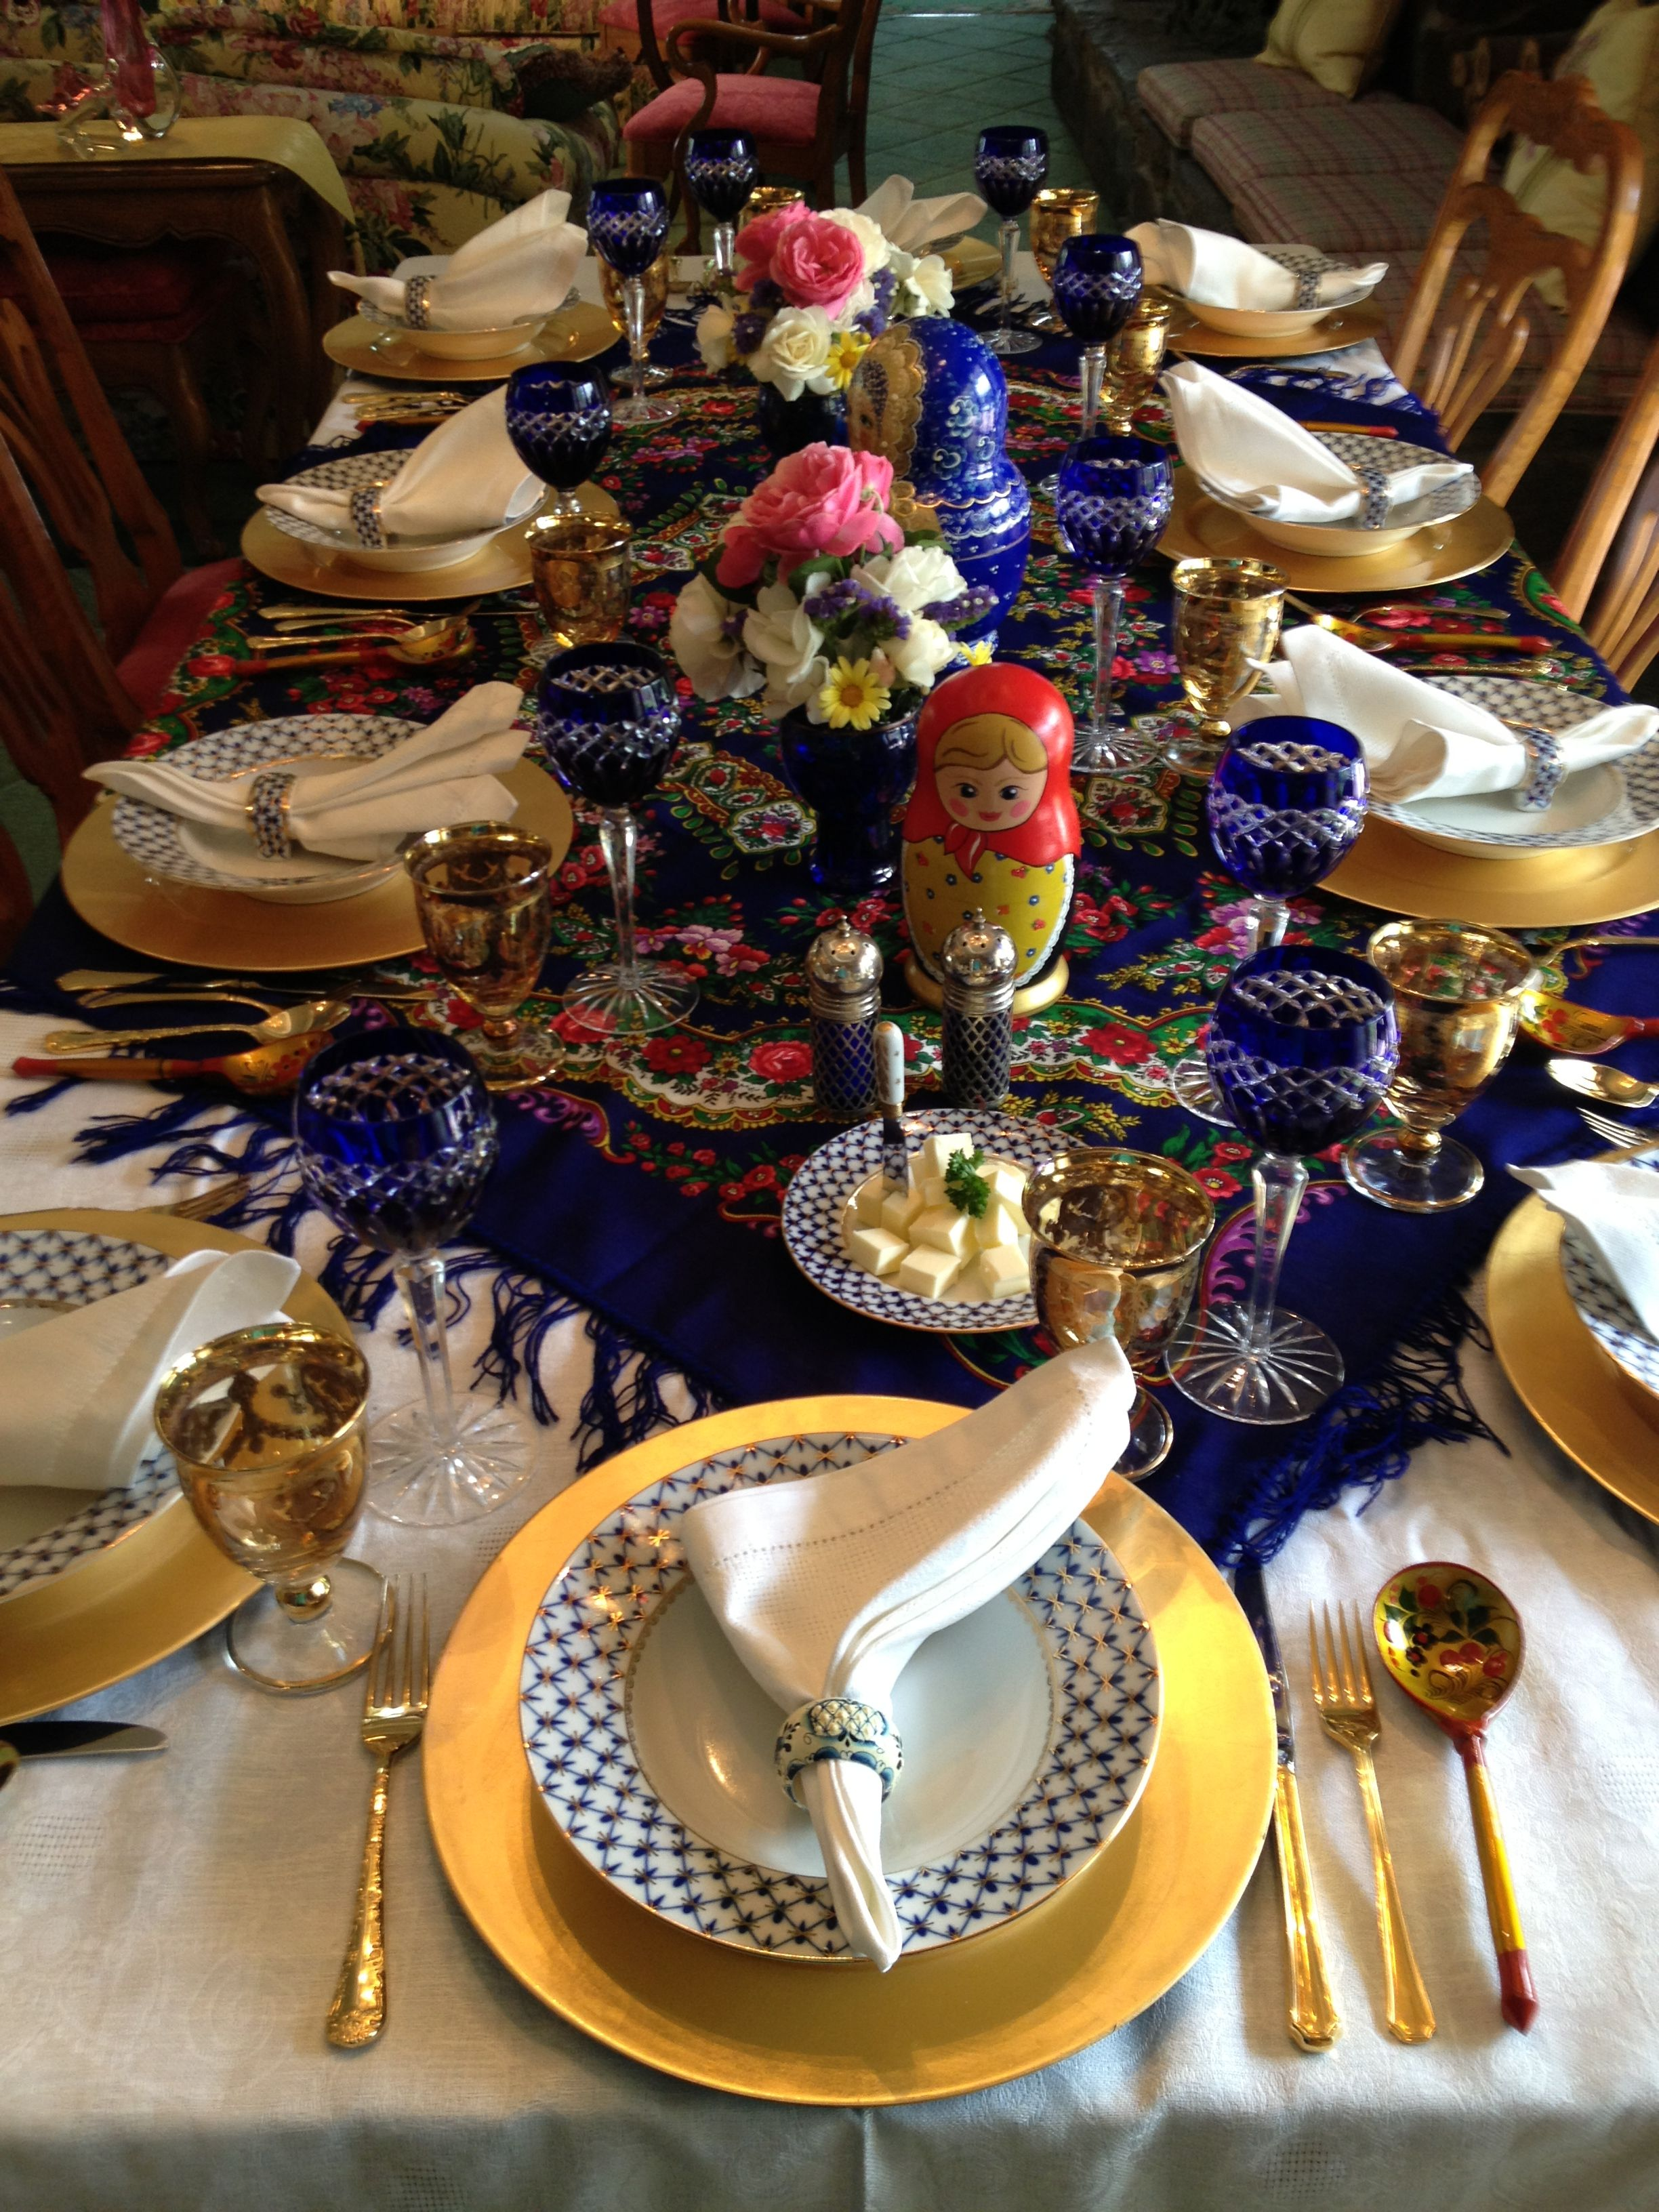 Russian Dinner Party Feast - Private Chef event table setting. : russian table settings - pezcame.com